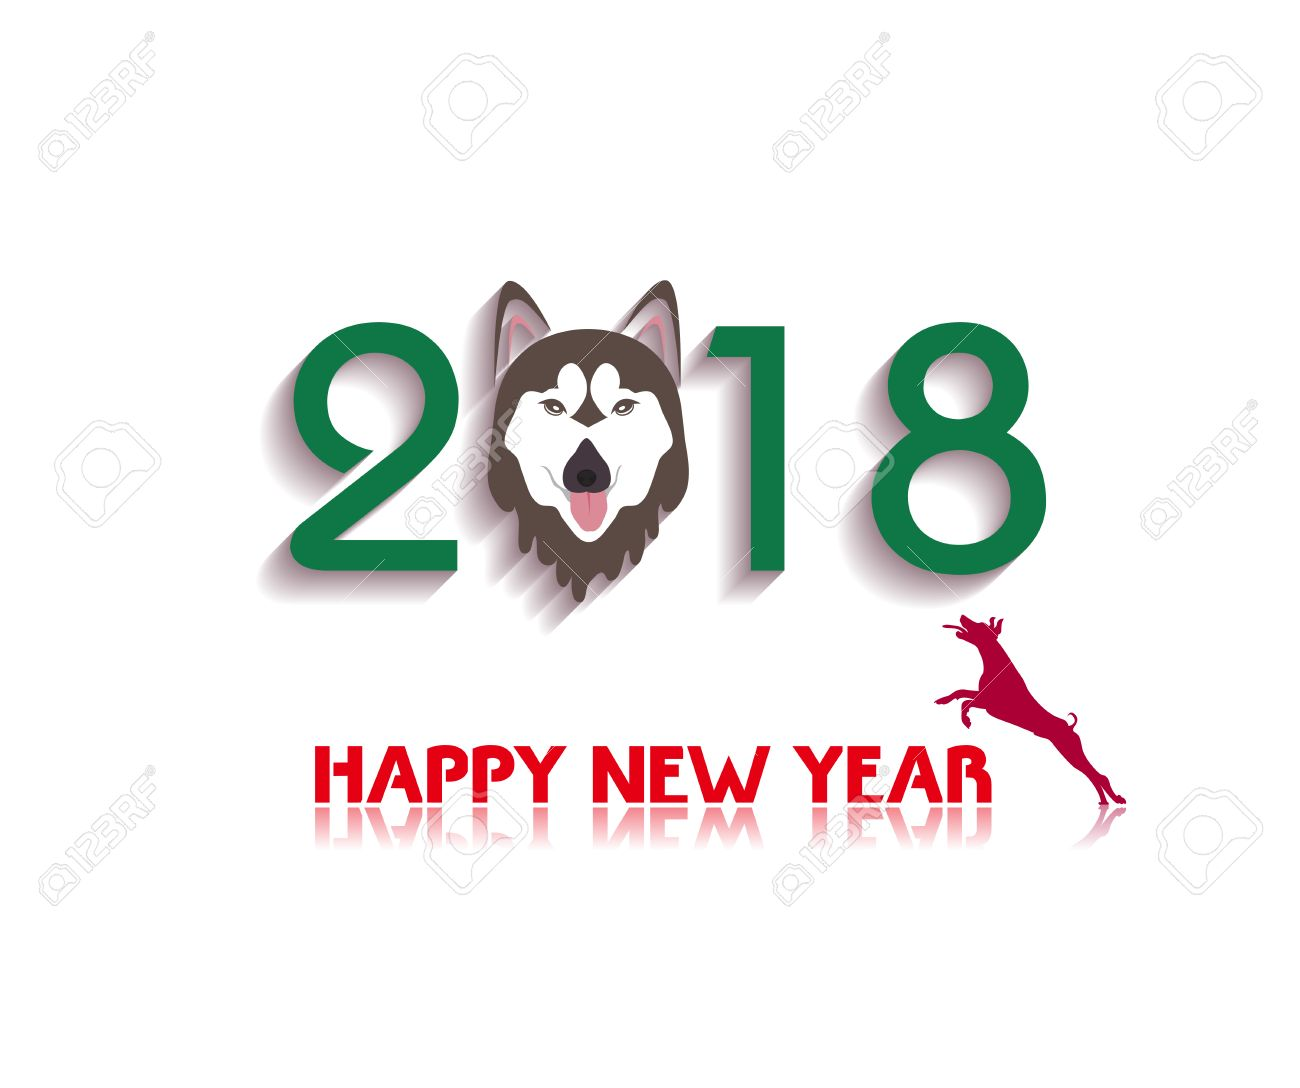 72401551-happy-new-year-2018-year-of-dog–Stock-Photo